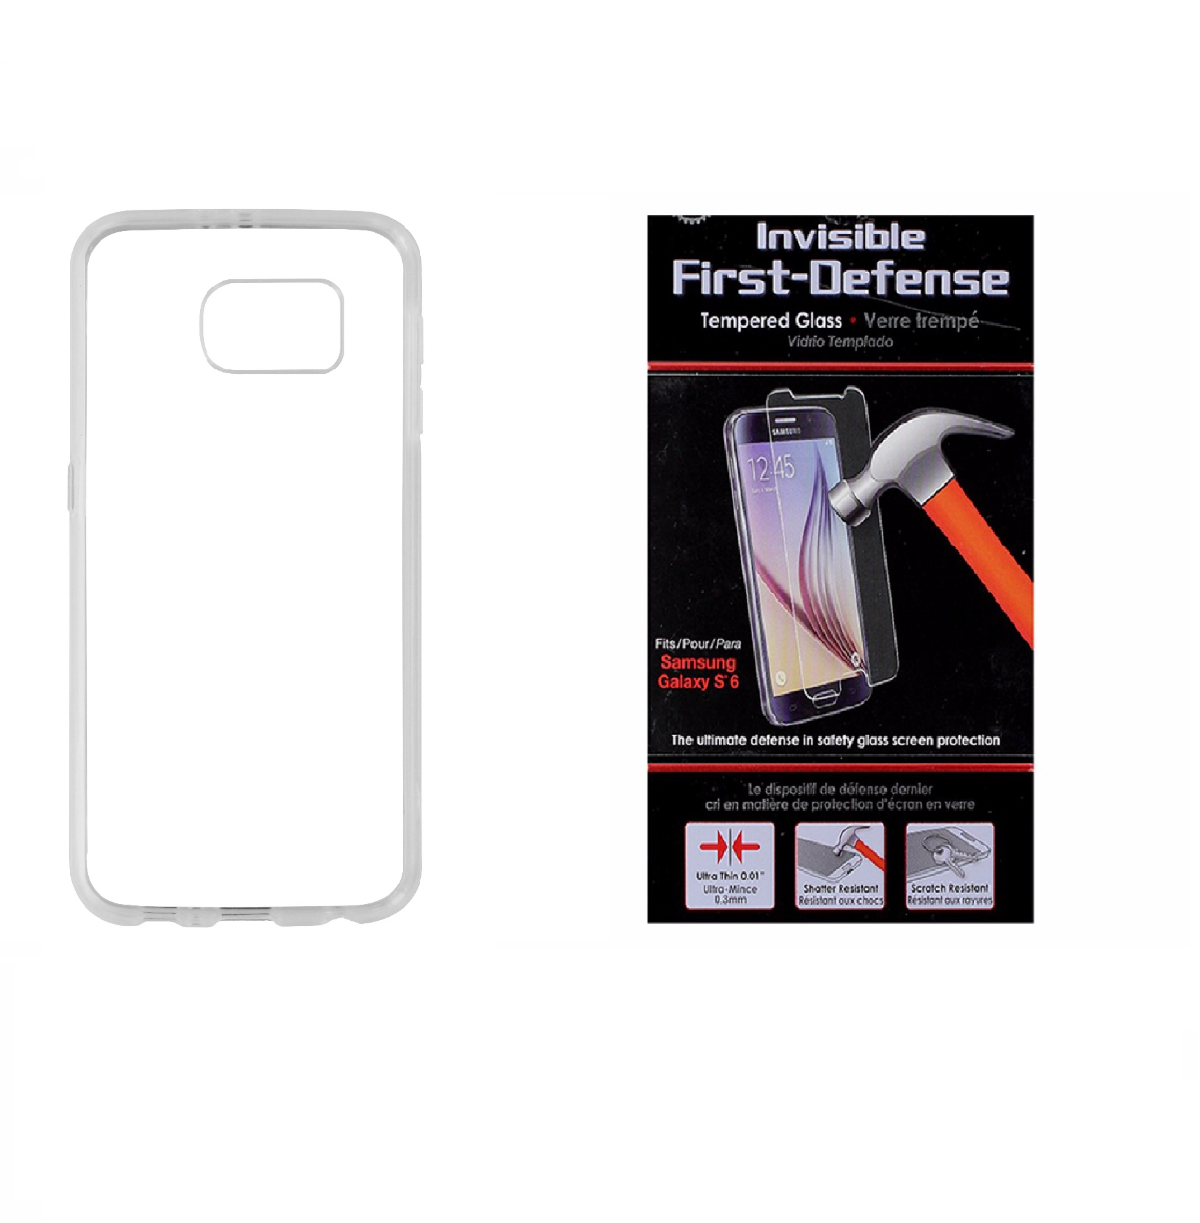 Insignia Clear Case and Qmadix Glass Screen Protector for Samsung Galaxy S6